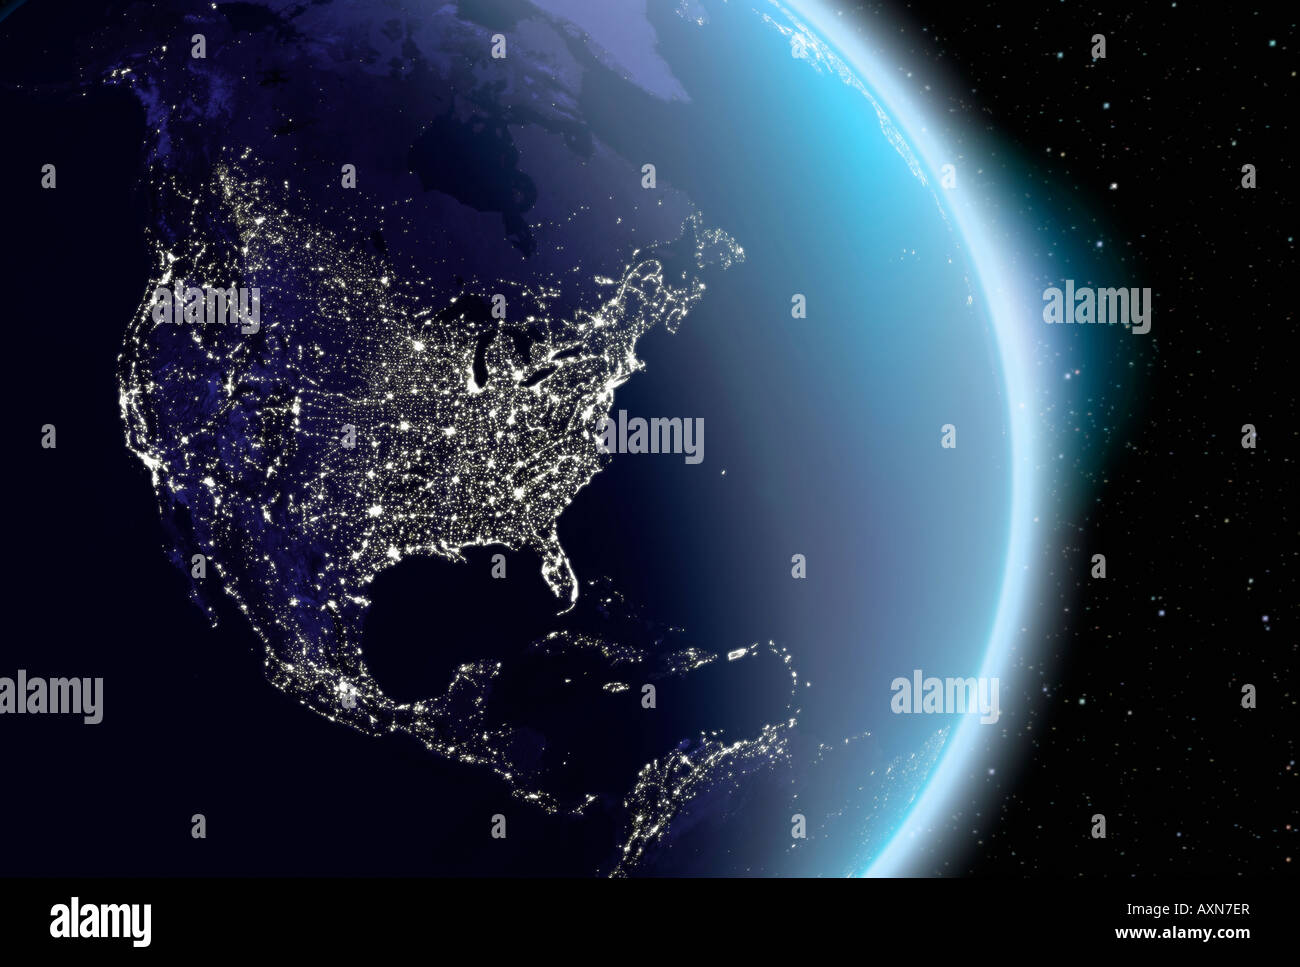 Satellite Image Of Planet Earth North America At Night Stock Photo - North america satellite image